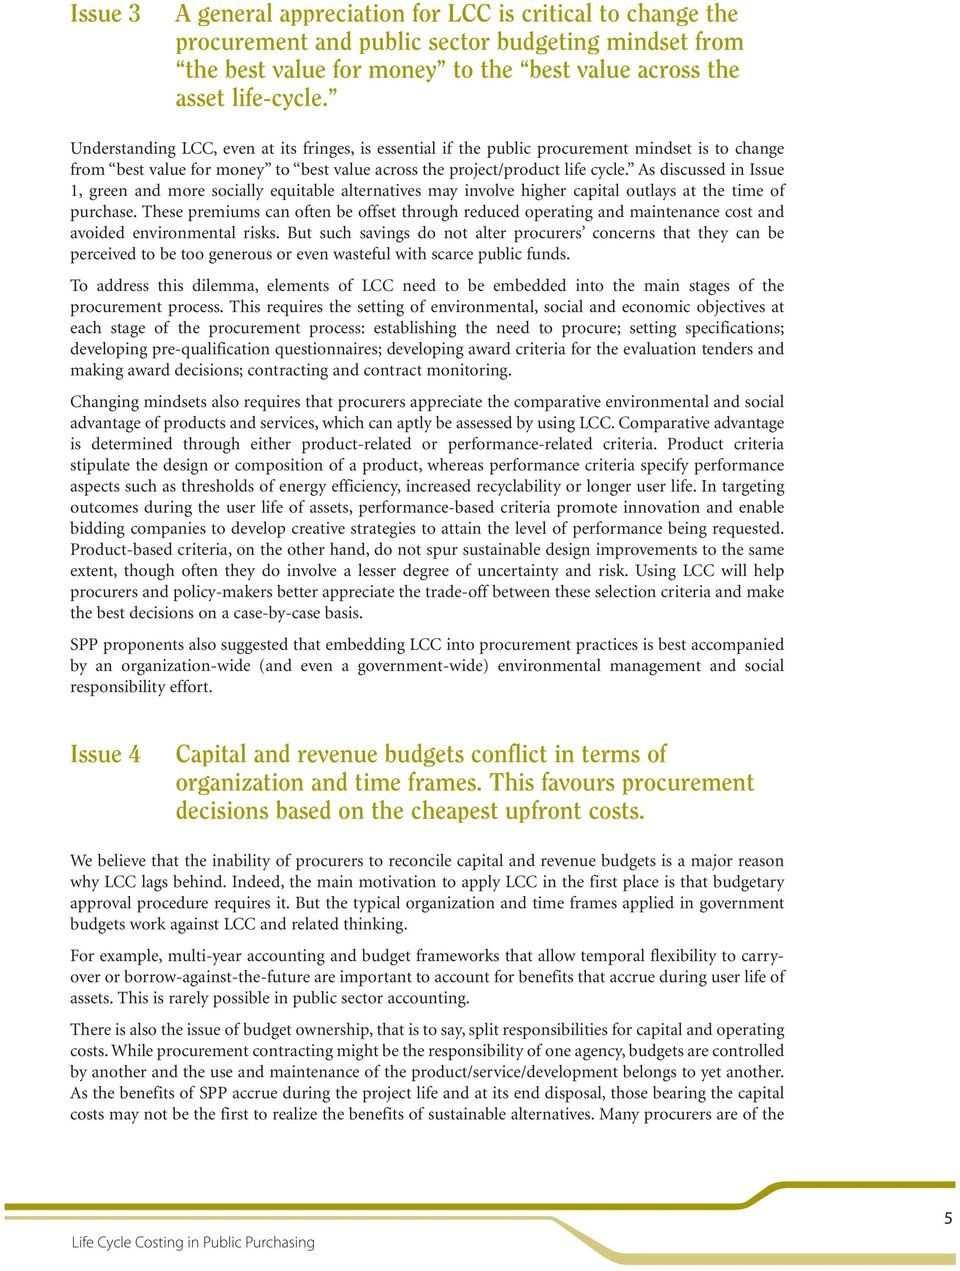 As discussed in Issue 1, green and more socially equitable alternatives may involve higher capital outlays at the time of purchase.